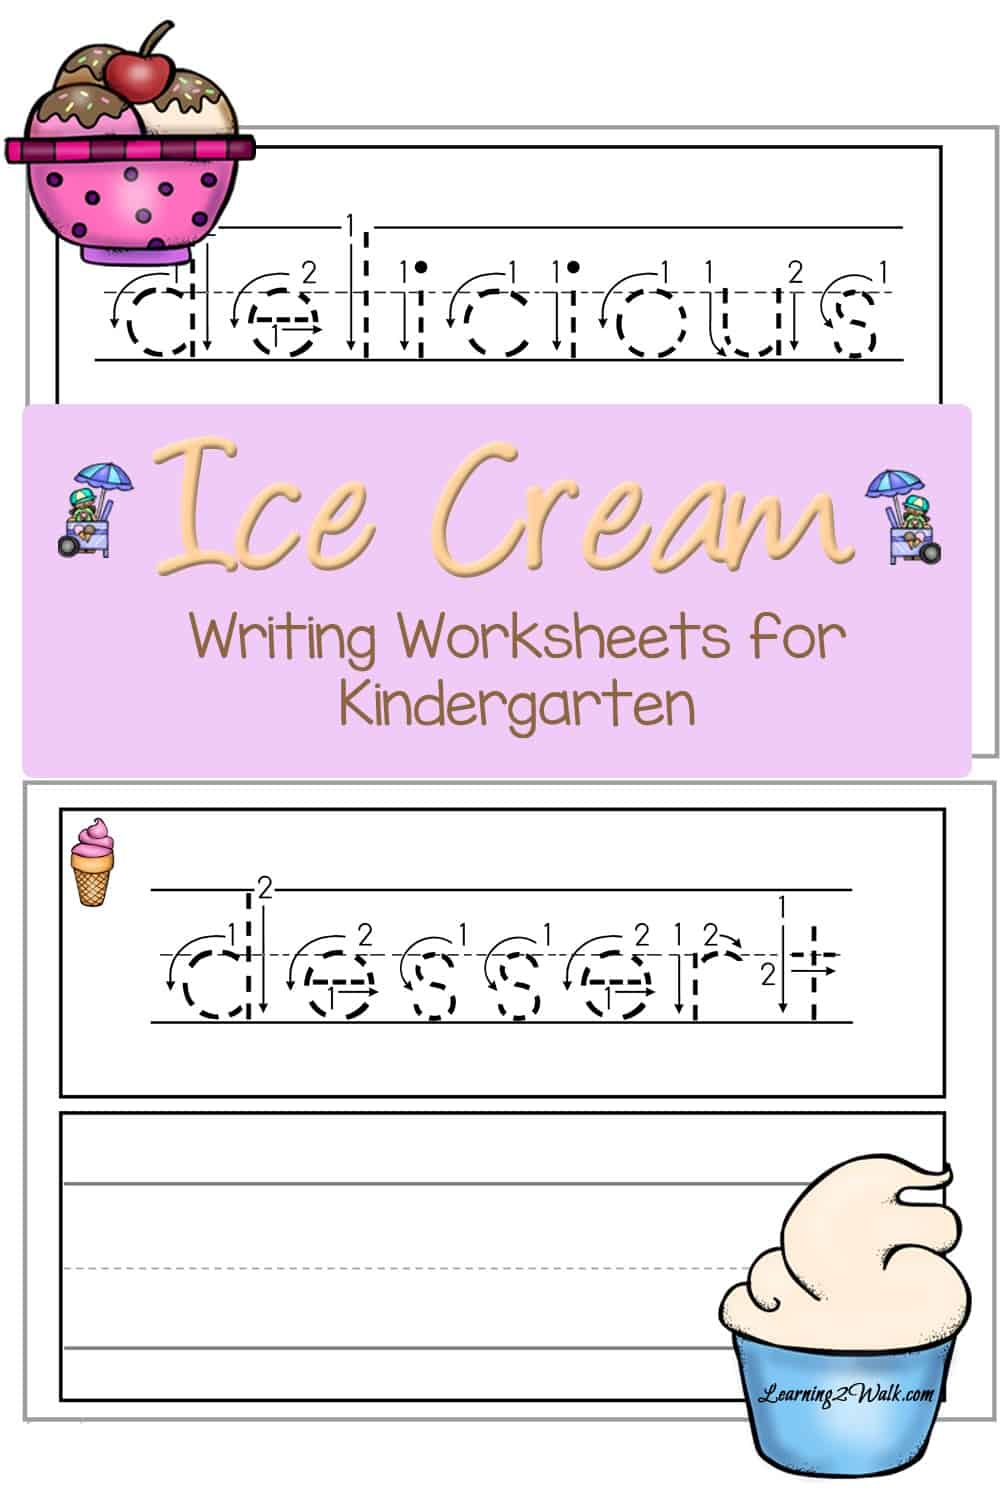 These free ice cream writing worksheets for kindergarten are perfect for helping your little one practice their writing as well as expanding their vocabulary!